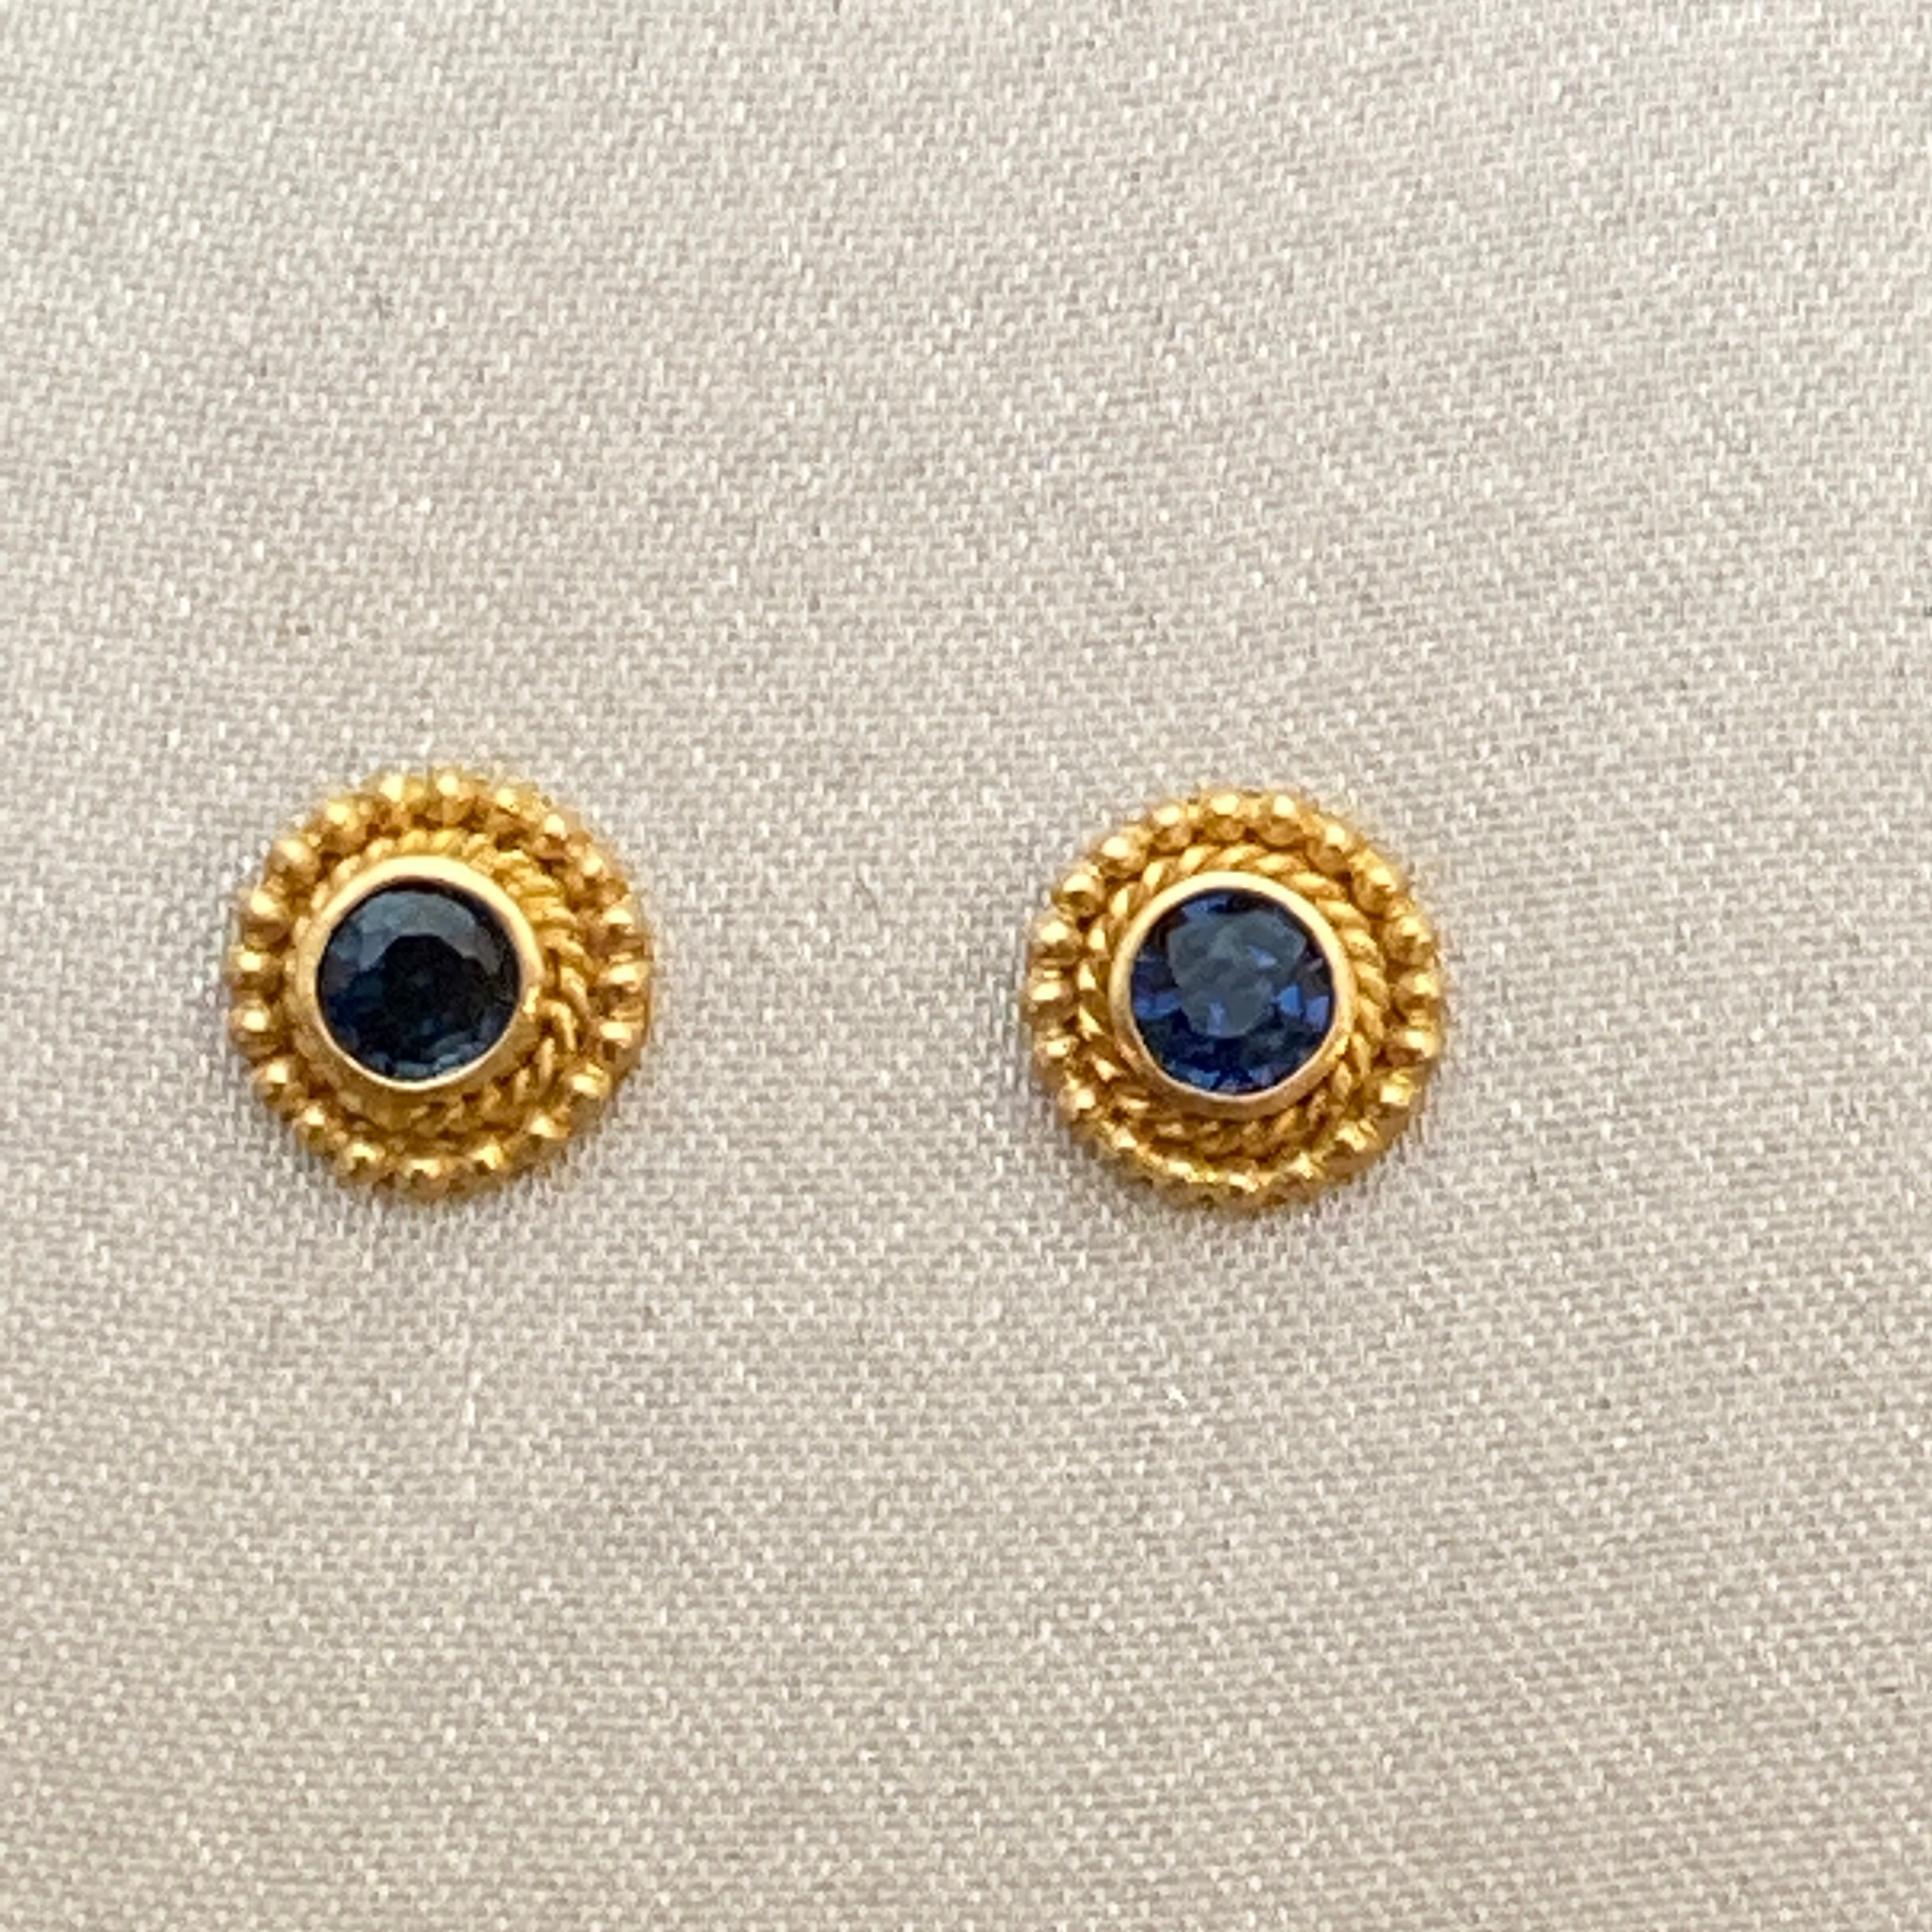 Faceted Sapphire 18k Gold Post Earrings